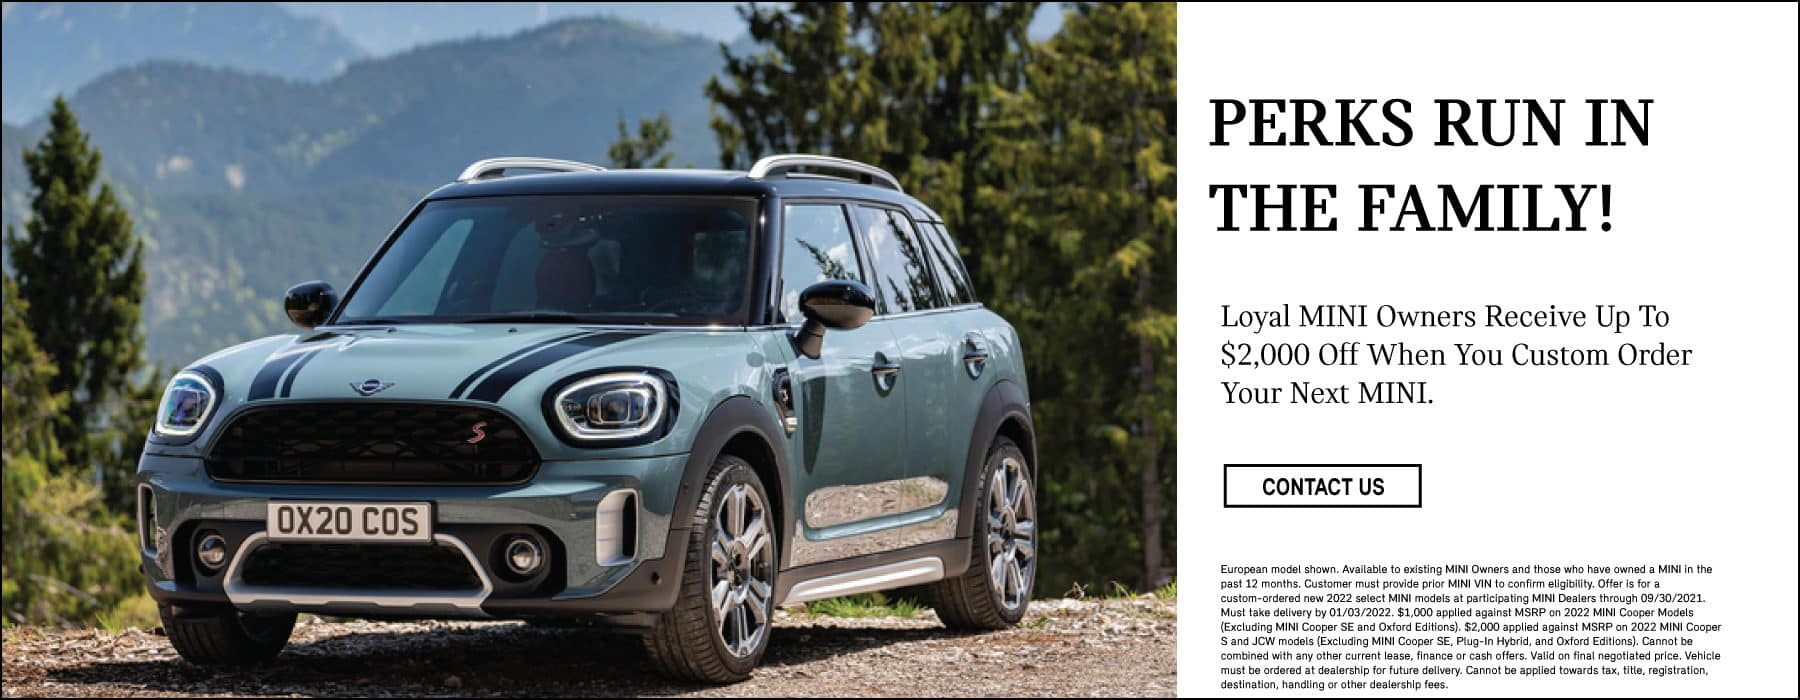 LOYAL MINI OWNERS RECEIVE UP TO $2,000 OFF WHEN YOU CUSTOM ORDER YOUR NEXT MINI. CLICK TO CONTACT US.